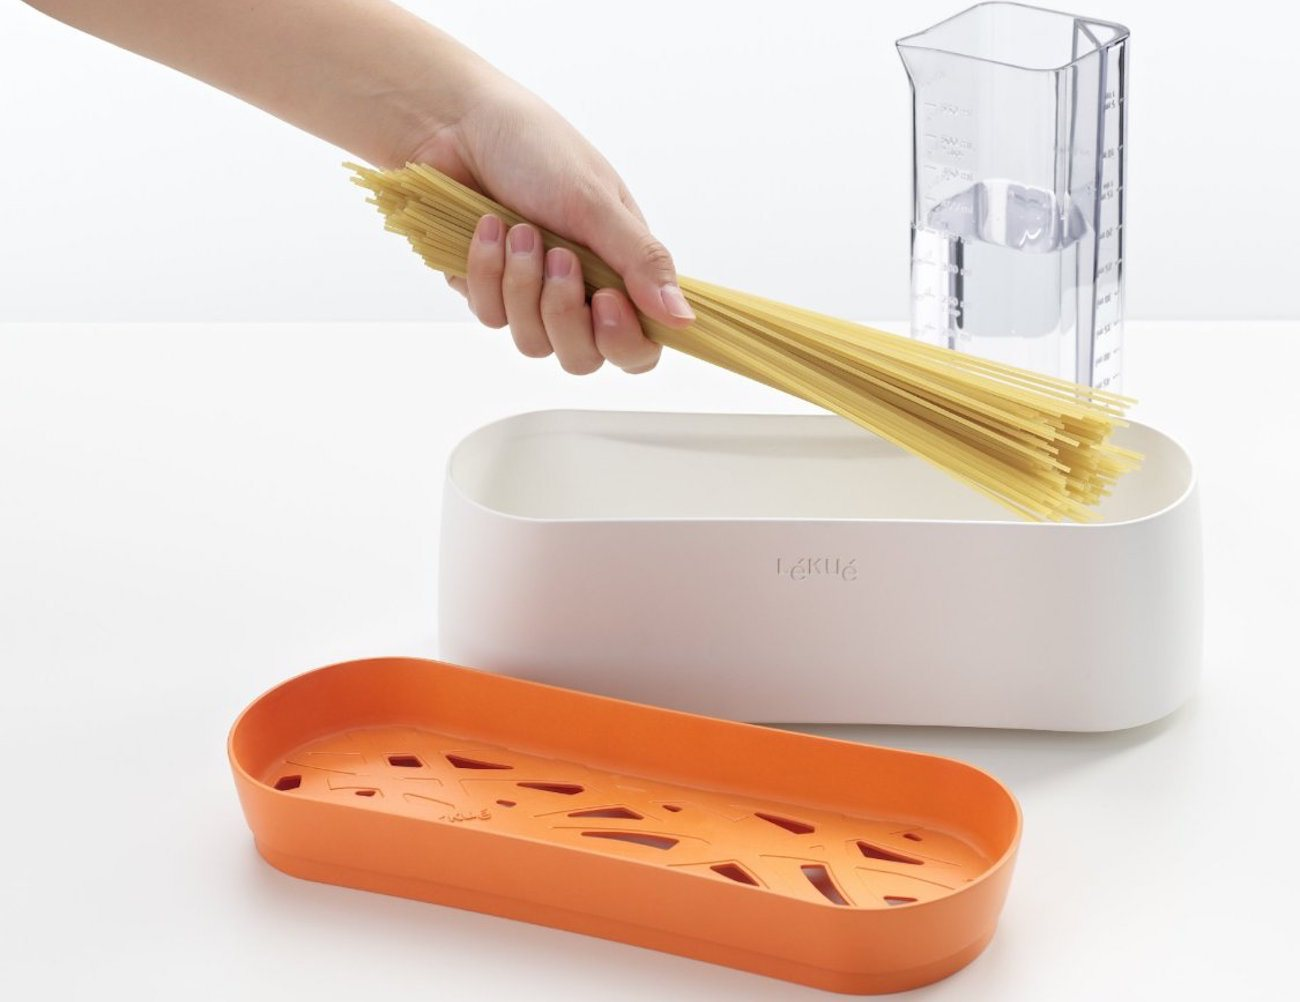 Lekue – Microwave Friendly Pasta Cooker